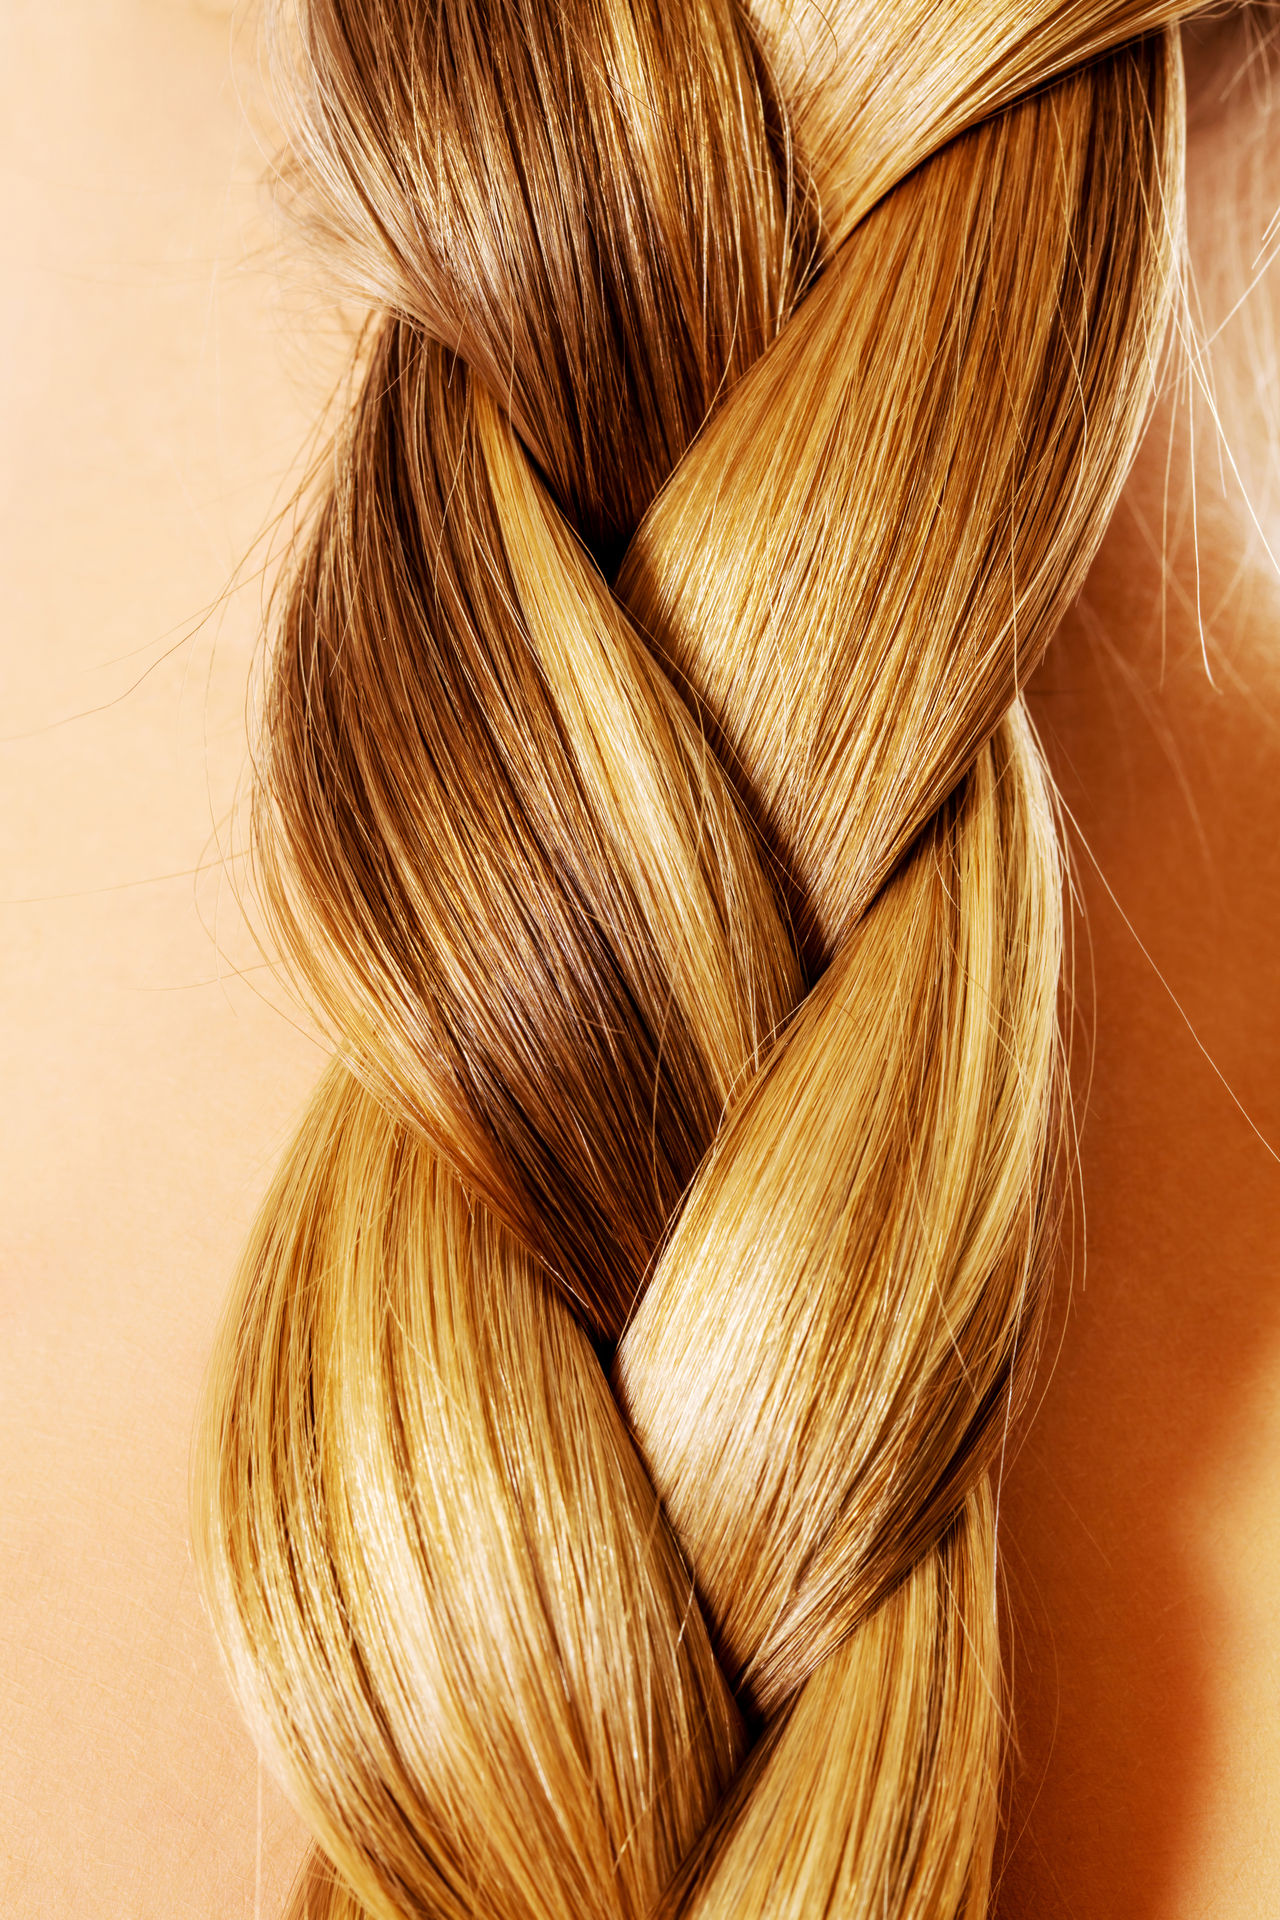 Blonde Braid Braided Hair Full Frame Hairs Hairstyle Long Woman